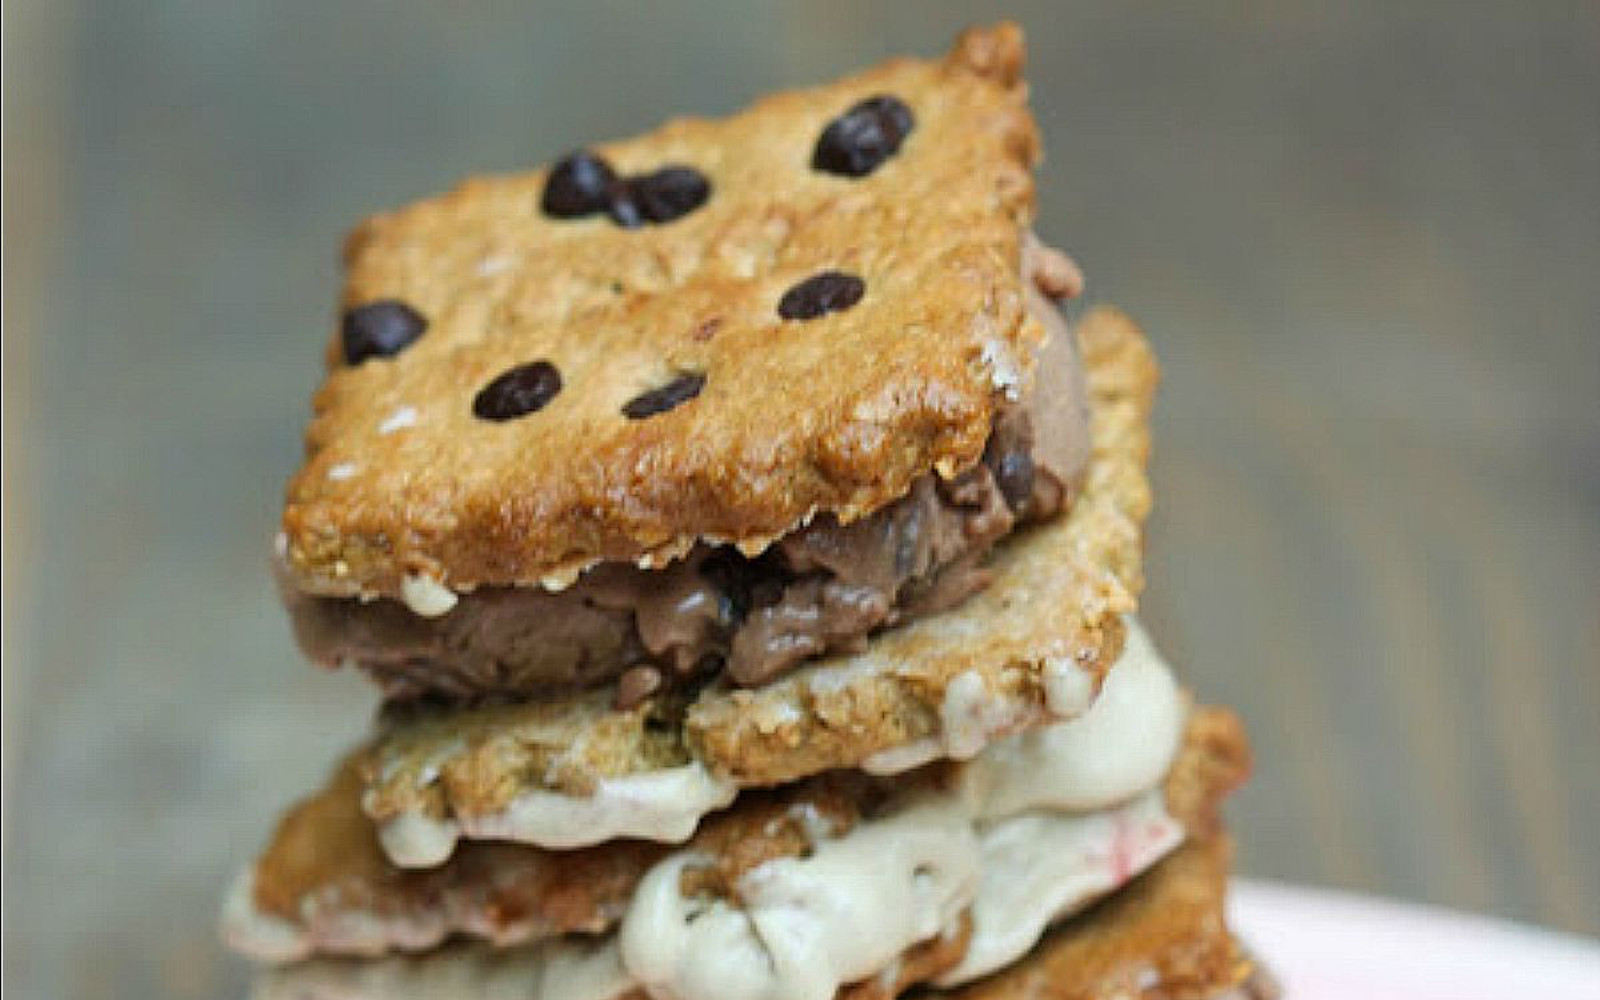 ice cream sandwiches with crunchy chocolate chip cookies